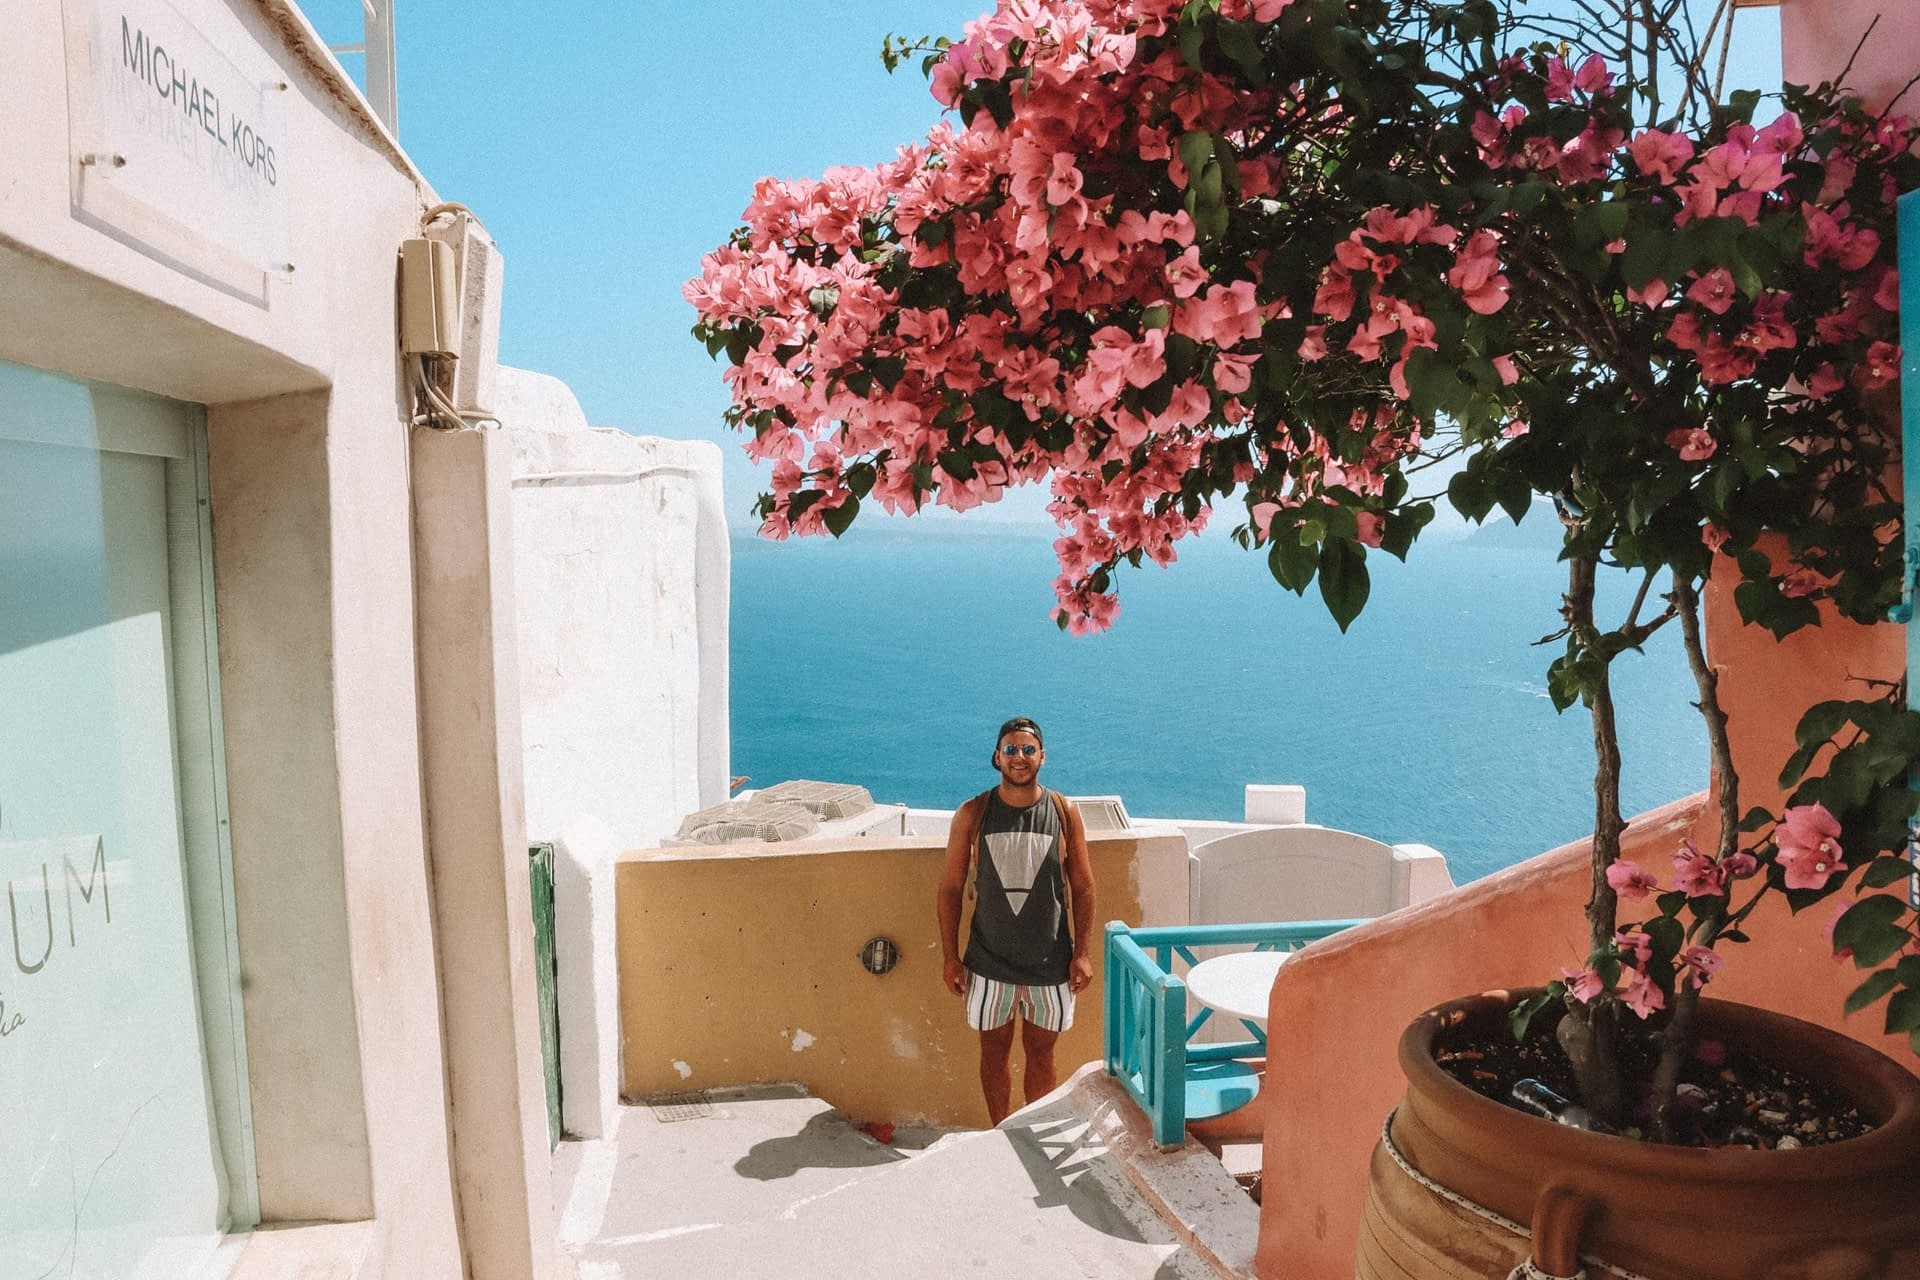 A man stood near pastel coloured walls with a tree blossoming. Things to do in Santorini